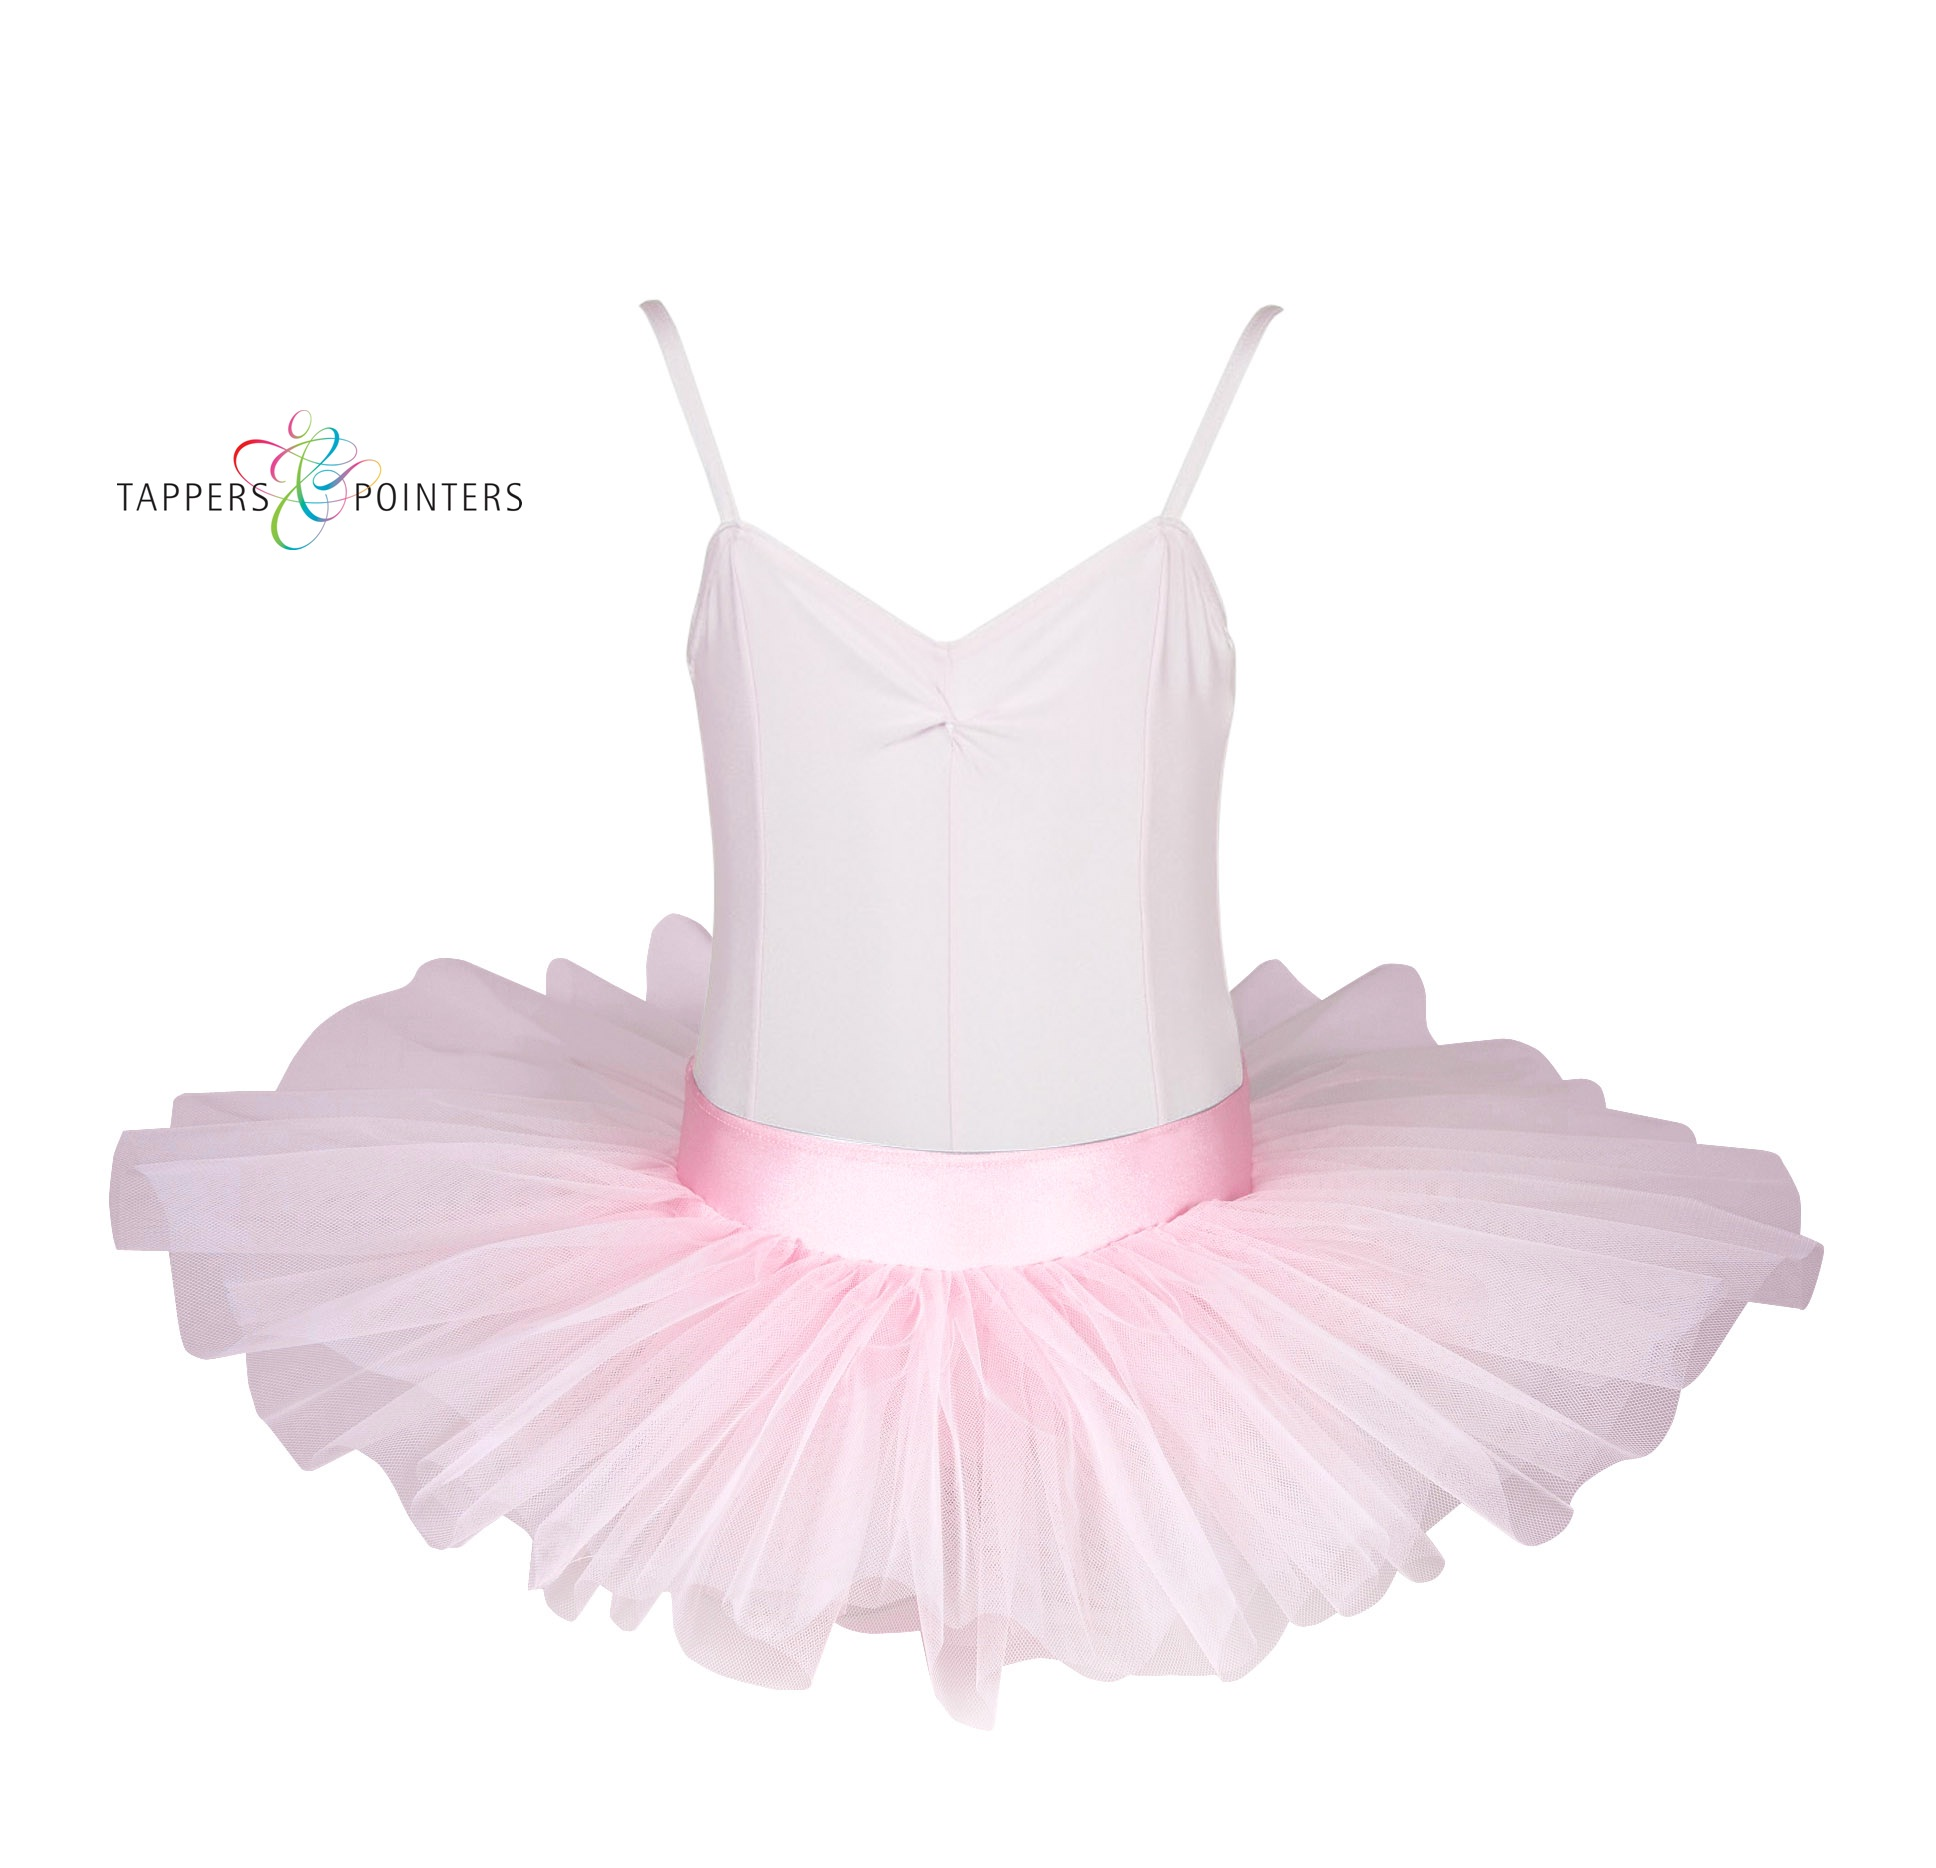 Pull On Tutu Skirt With 3 Net Layers Available In Black Pink Or White